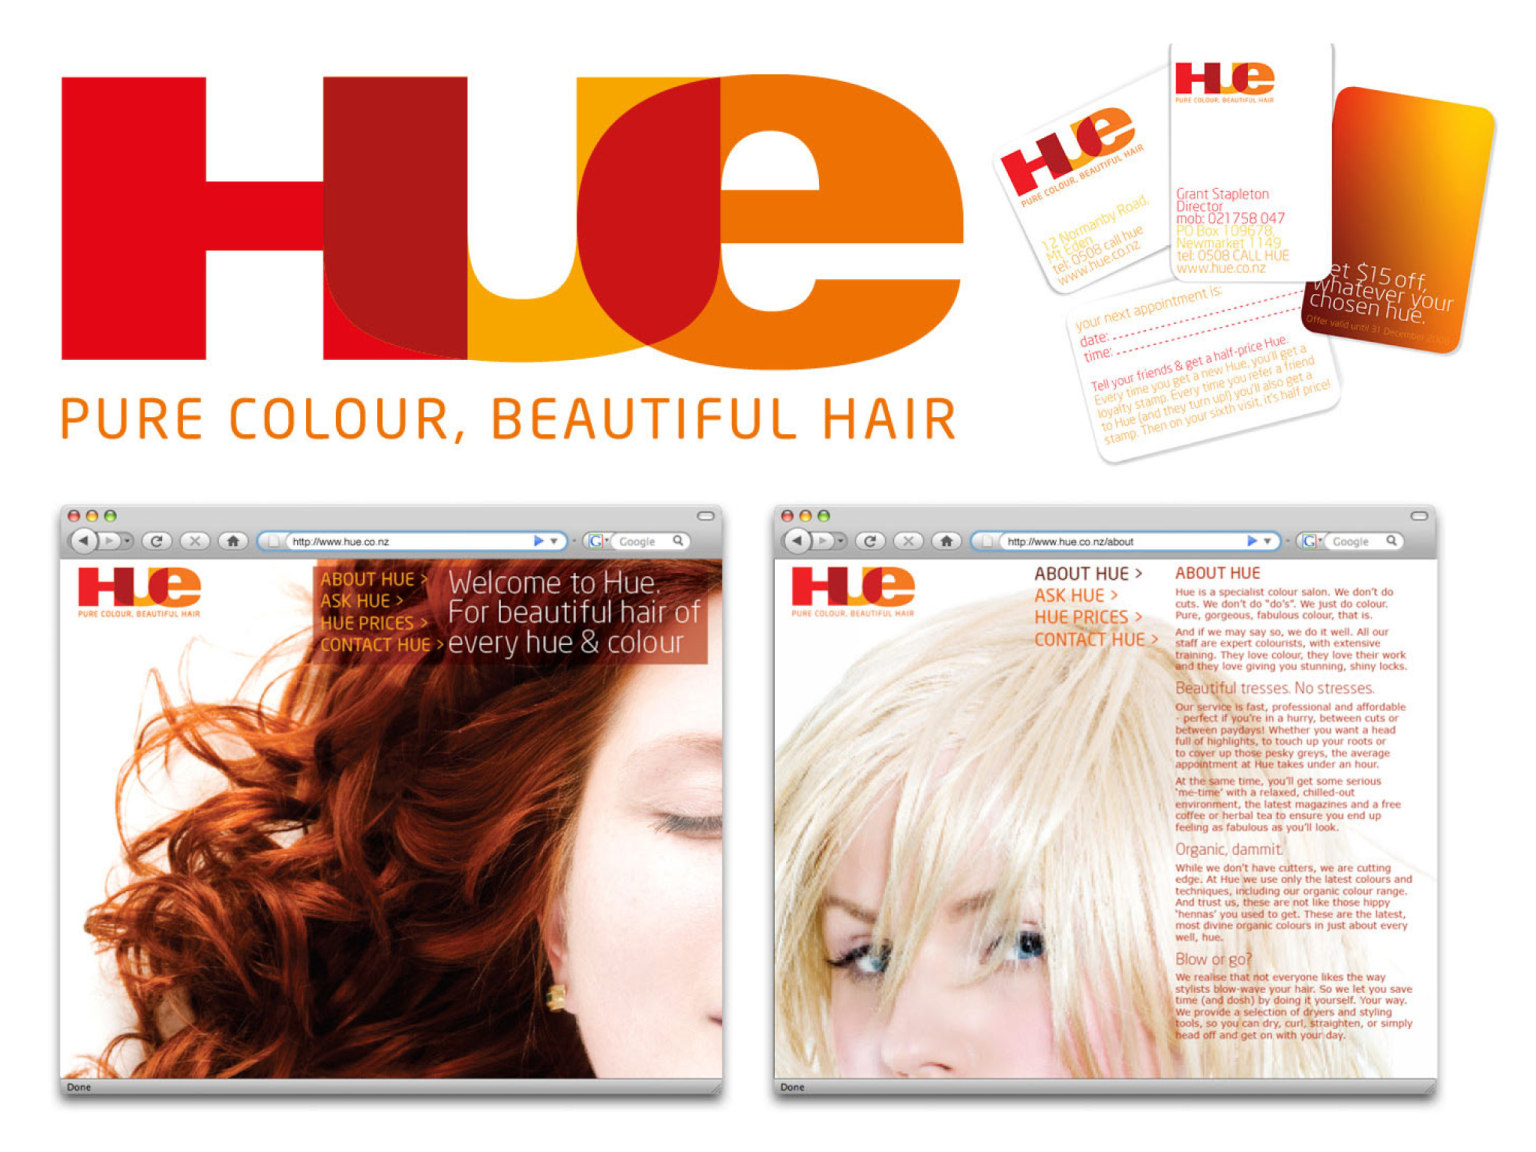 Hair colouring salon brand identity